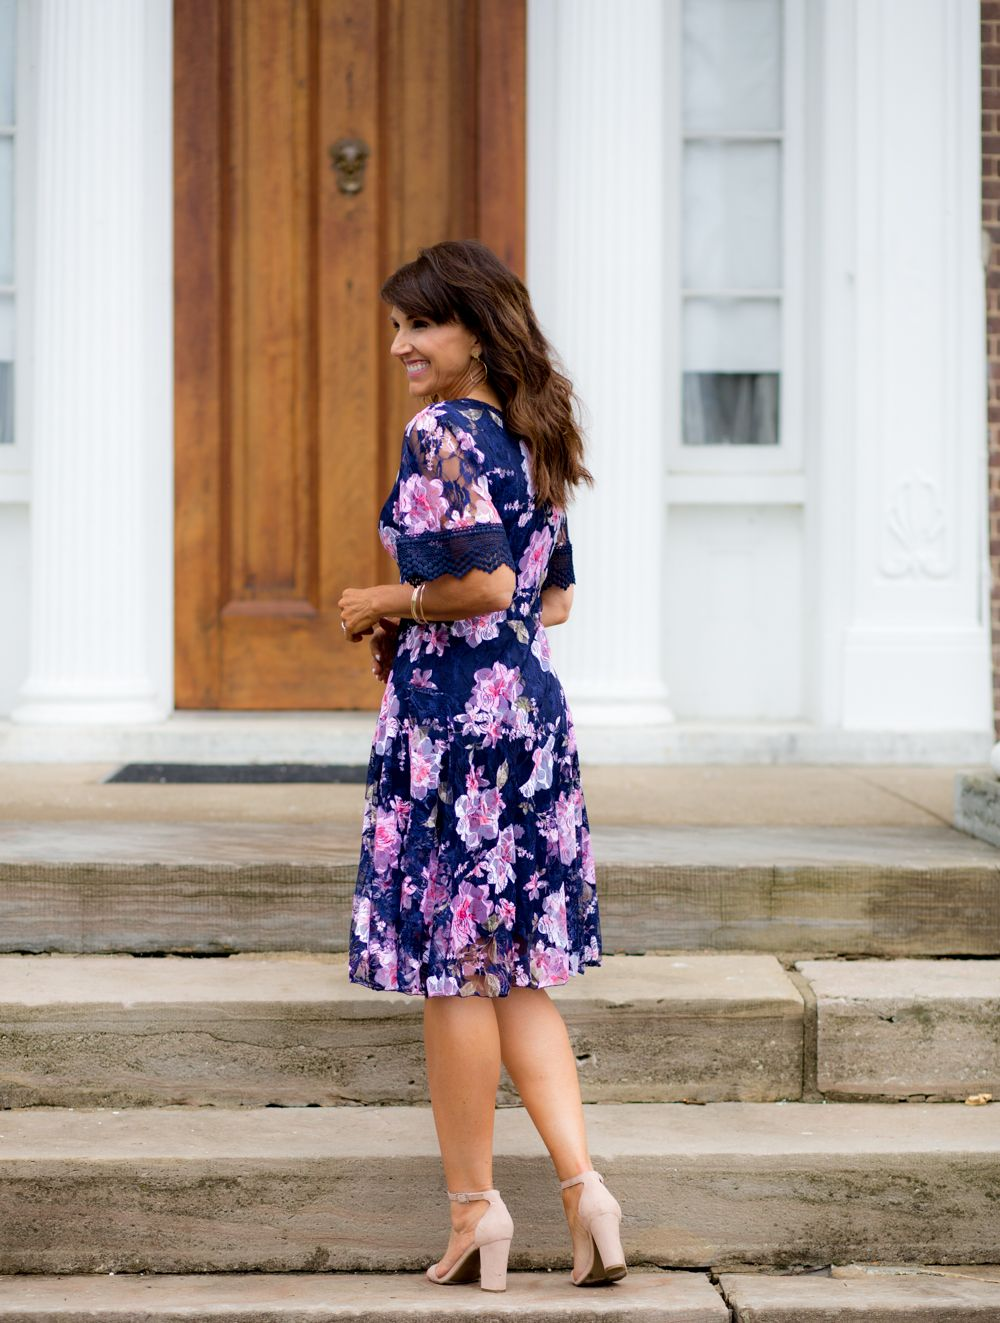 d8558217ed5 Spring Dresses with JCPenney. Grab one of these dresses for a fresh  feminine look this